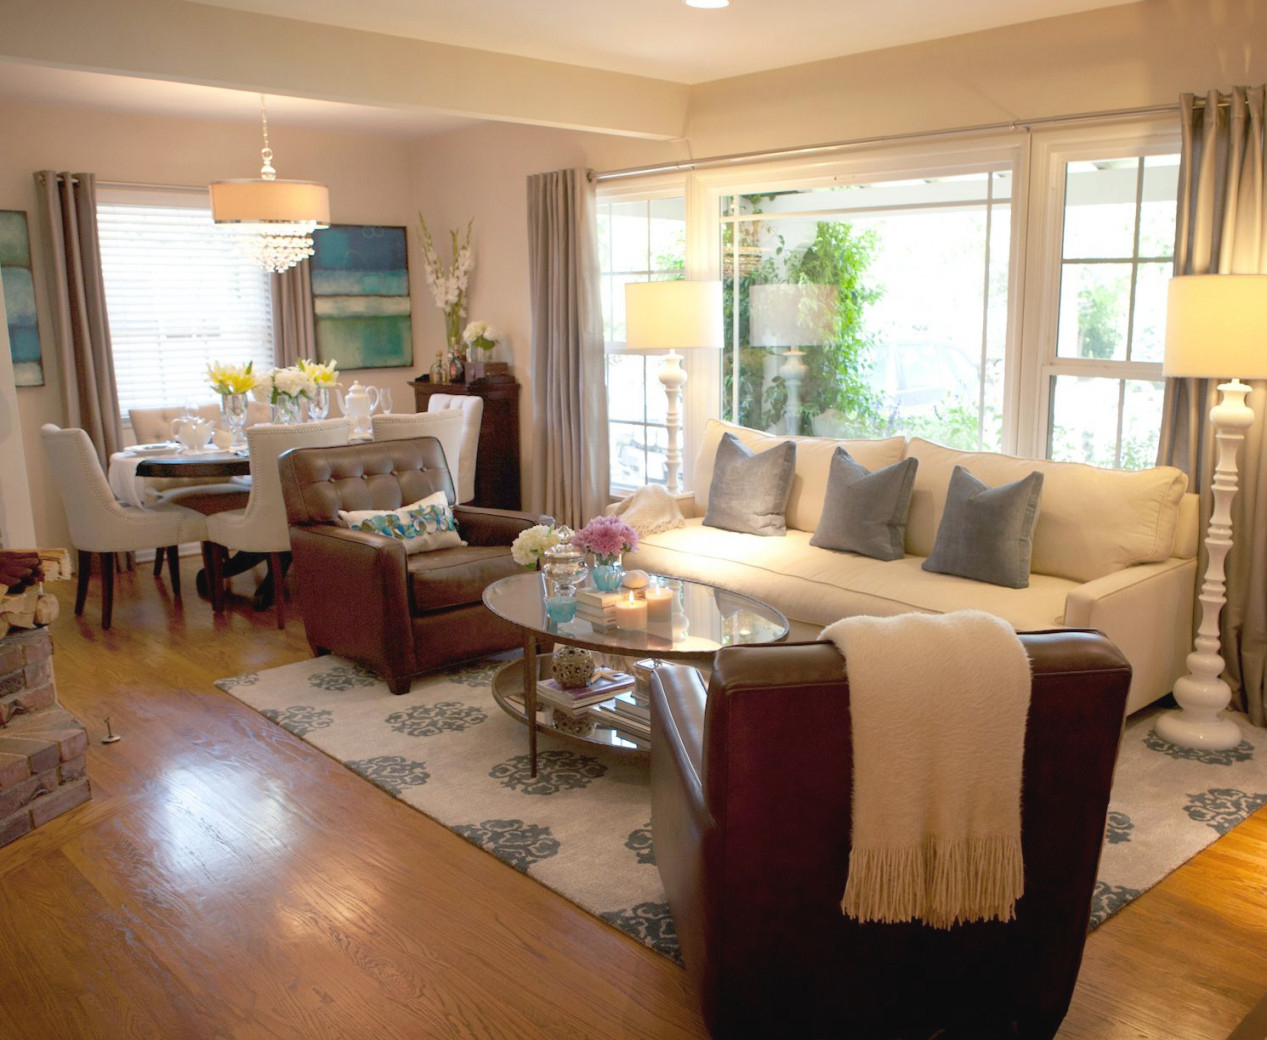 The Living And Dining Room Inspiration   Timticks Interior intended for Living And Dining Room Ideas